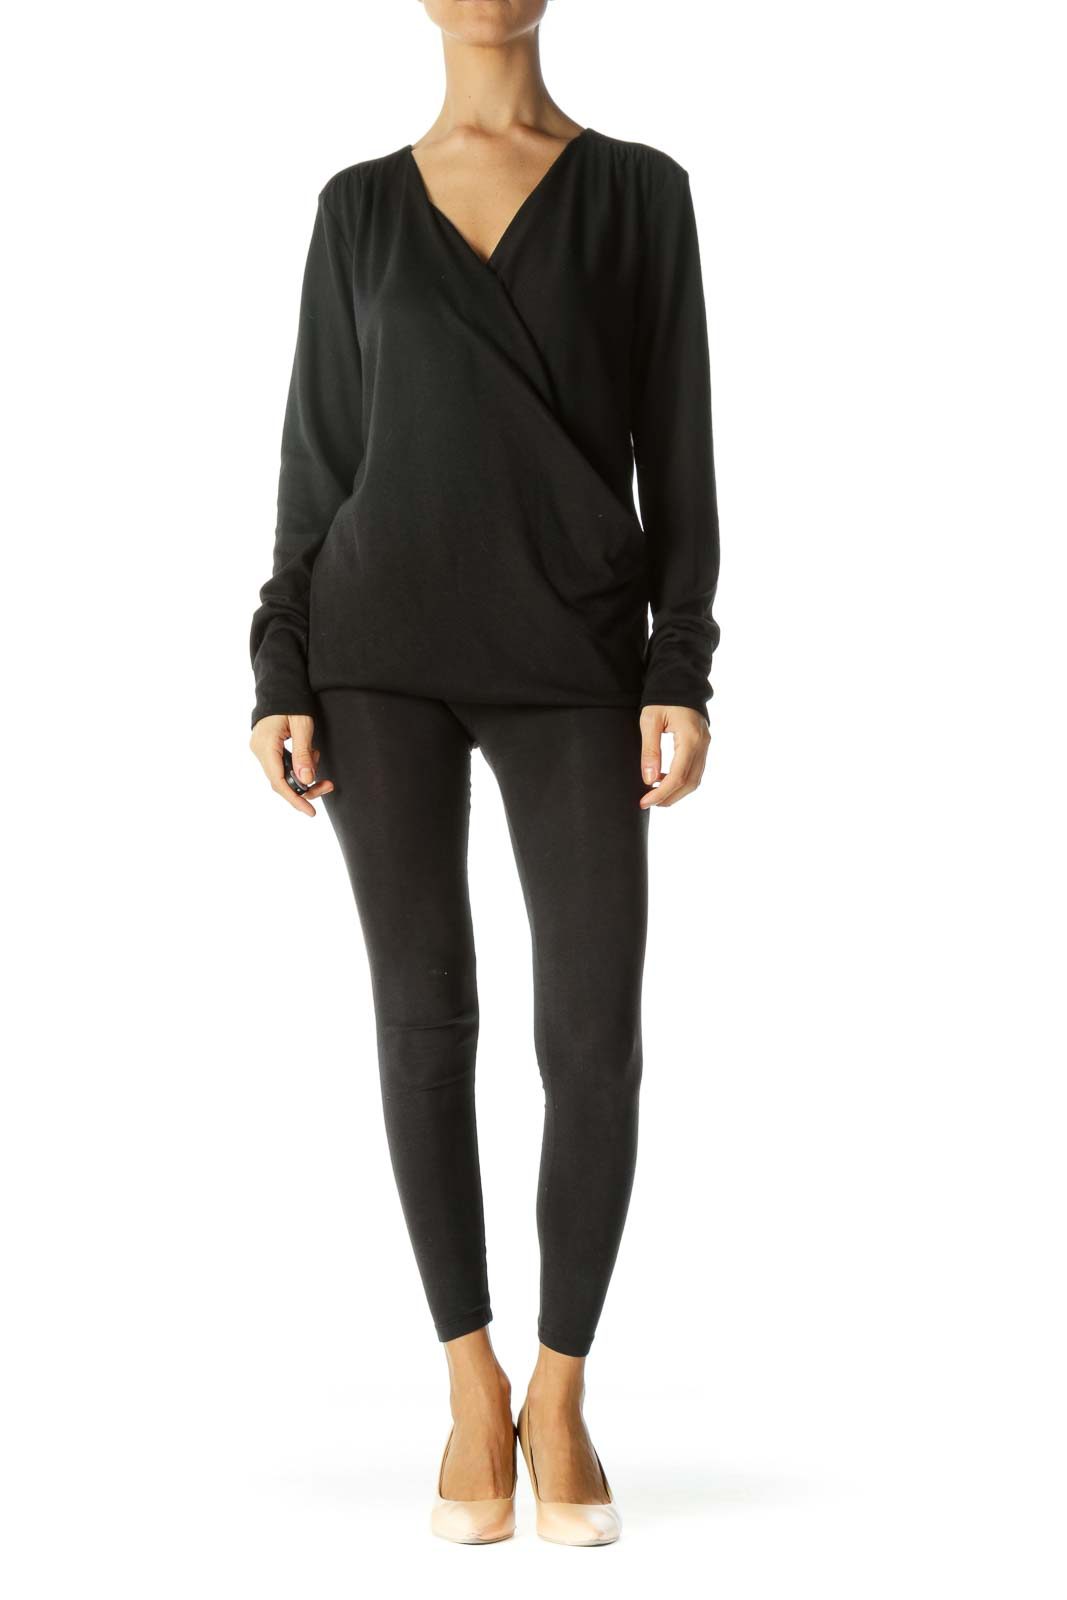 Black One Small Snap Button Surplice Long Sleeve Knit Top